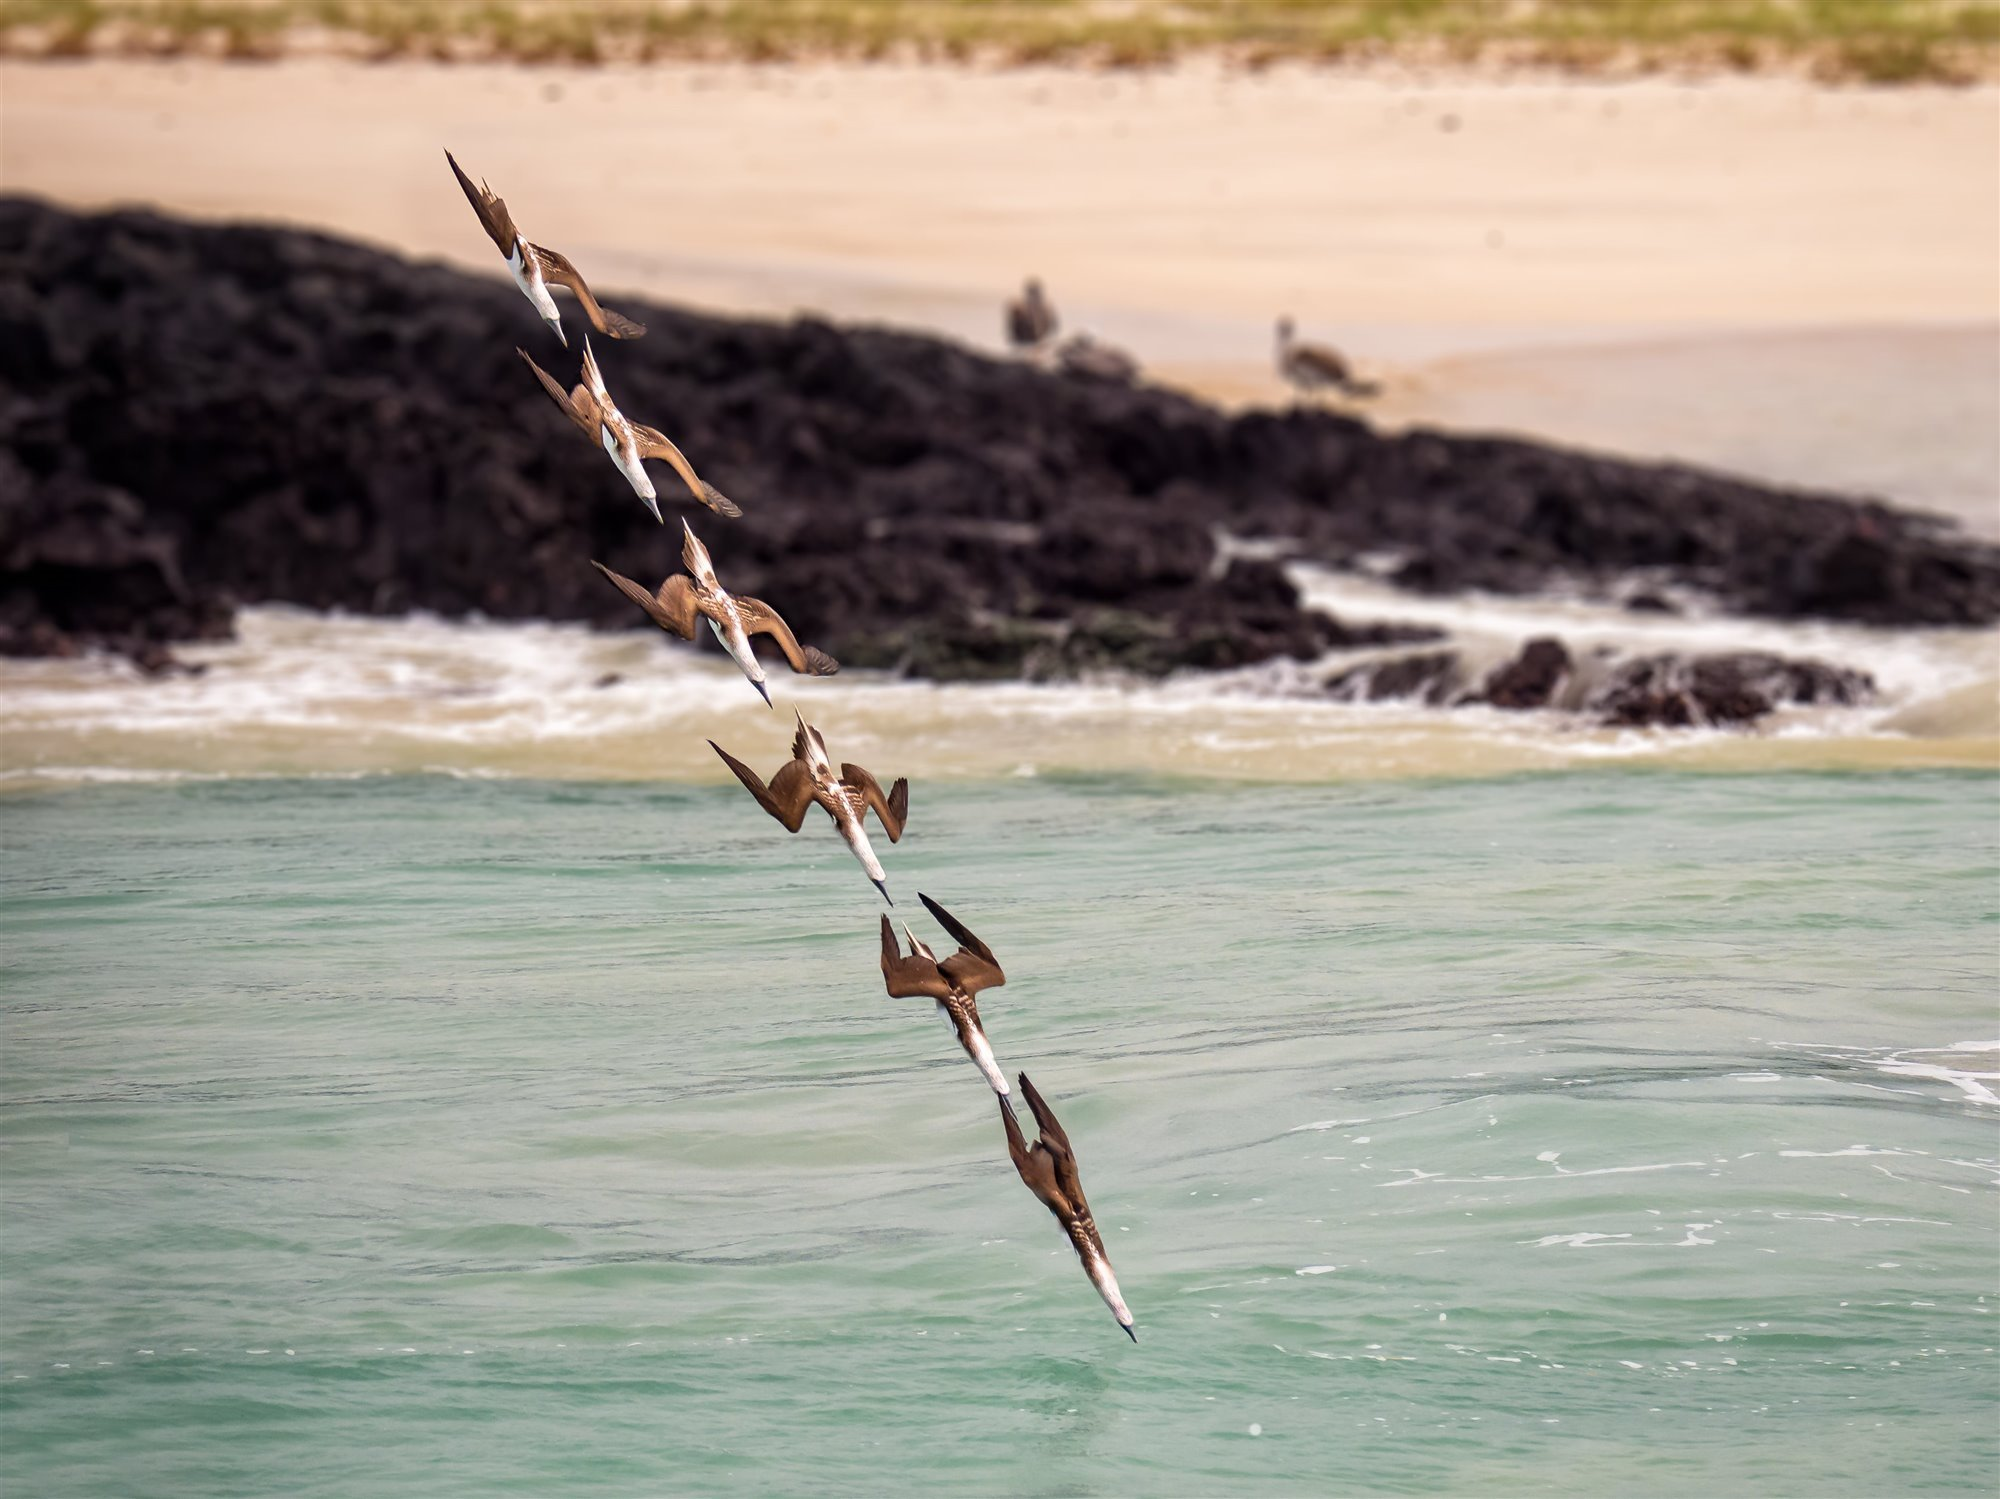 Blue-footed Boobies diving